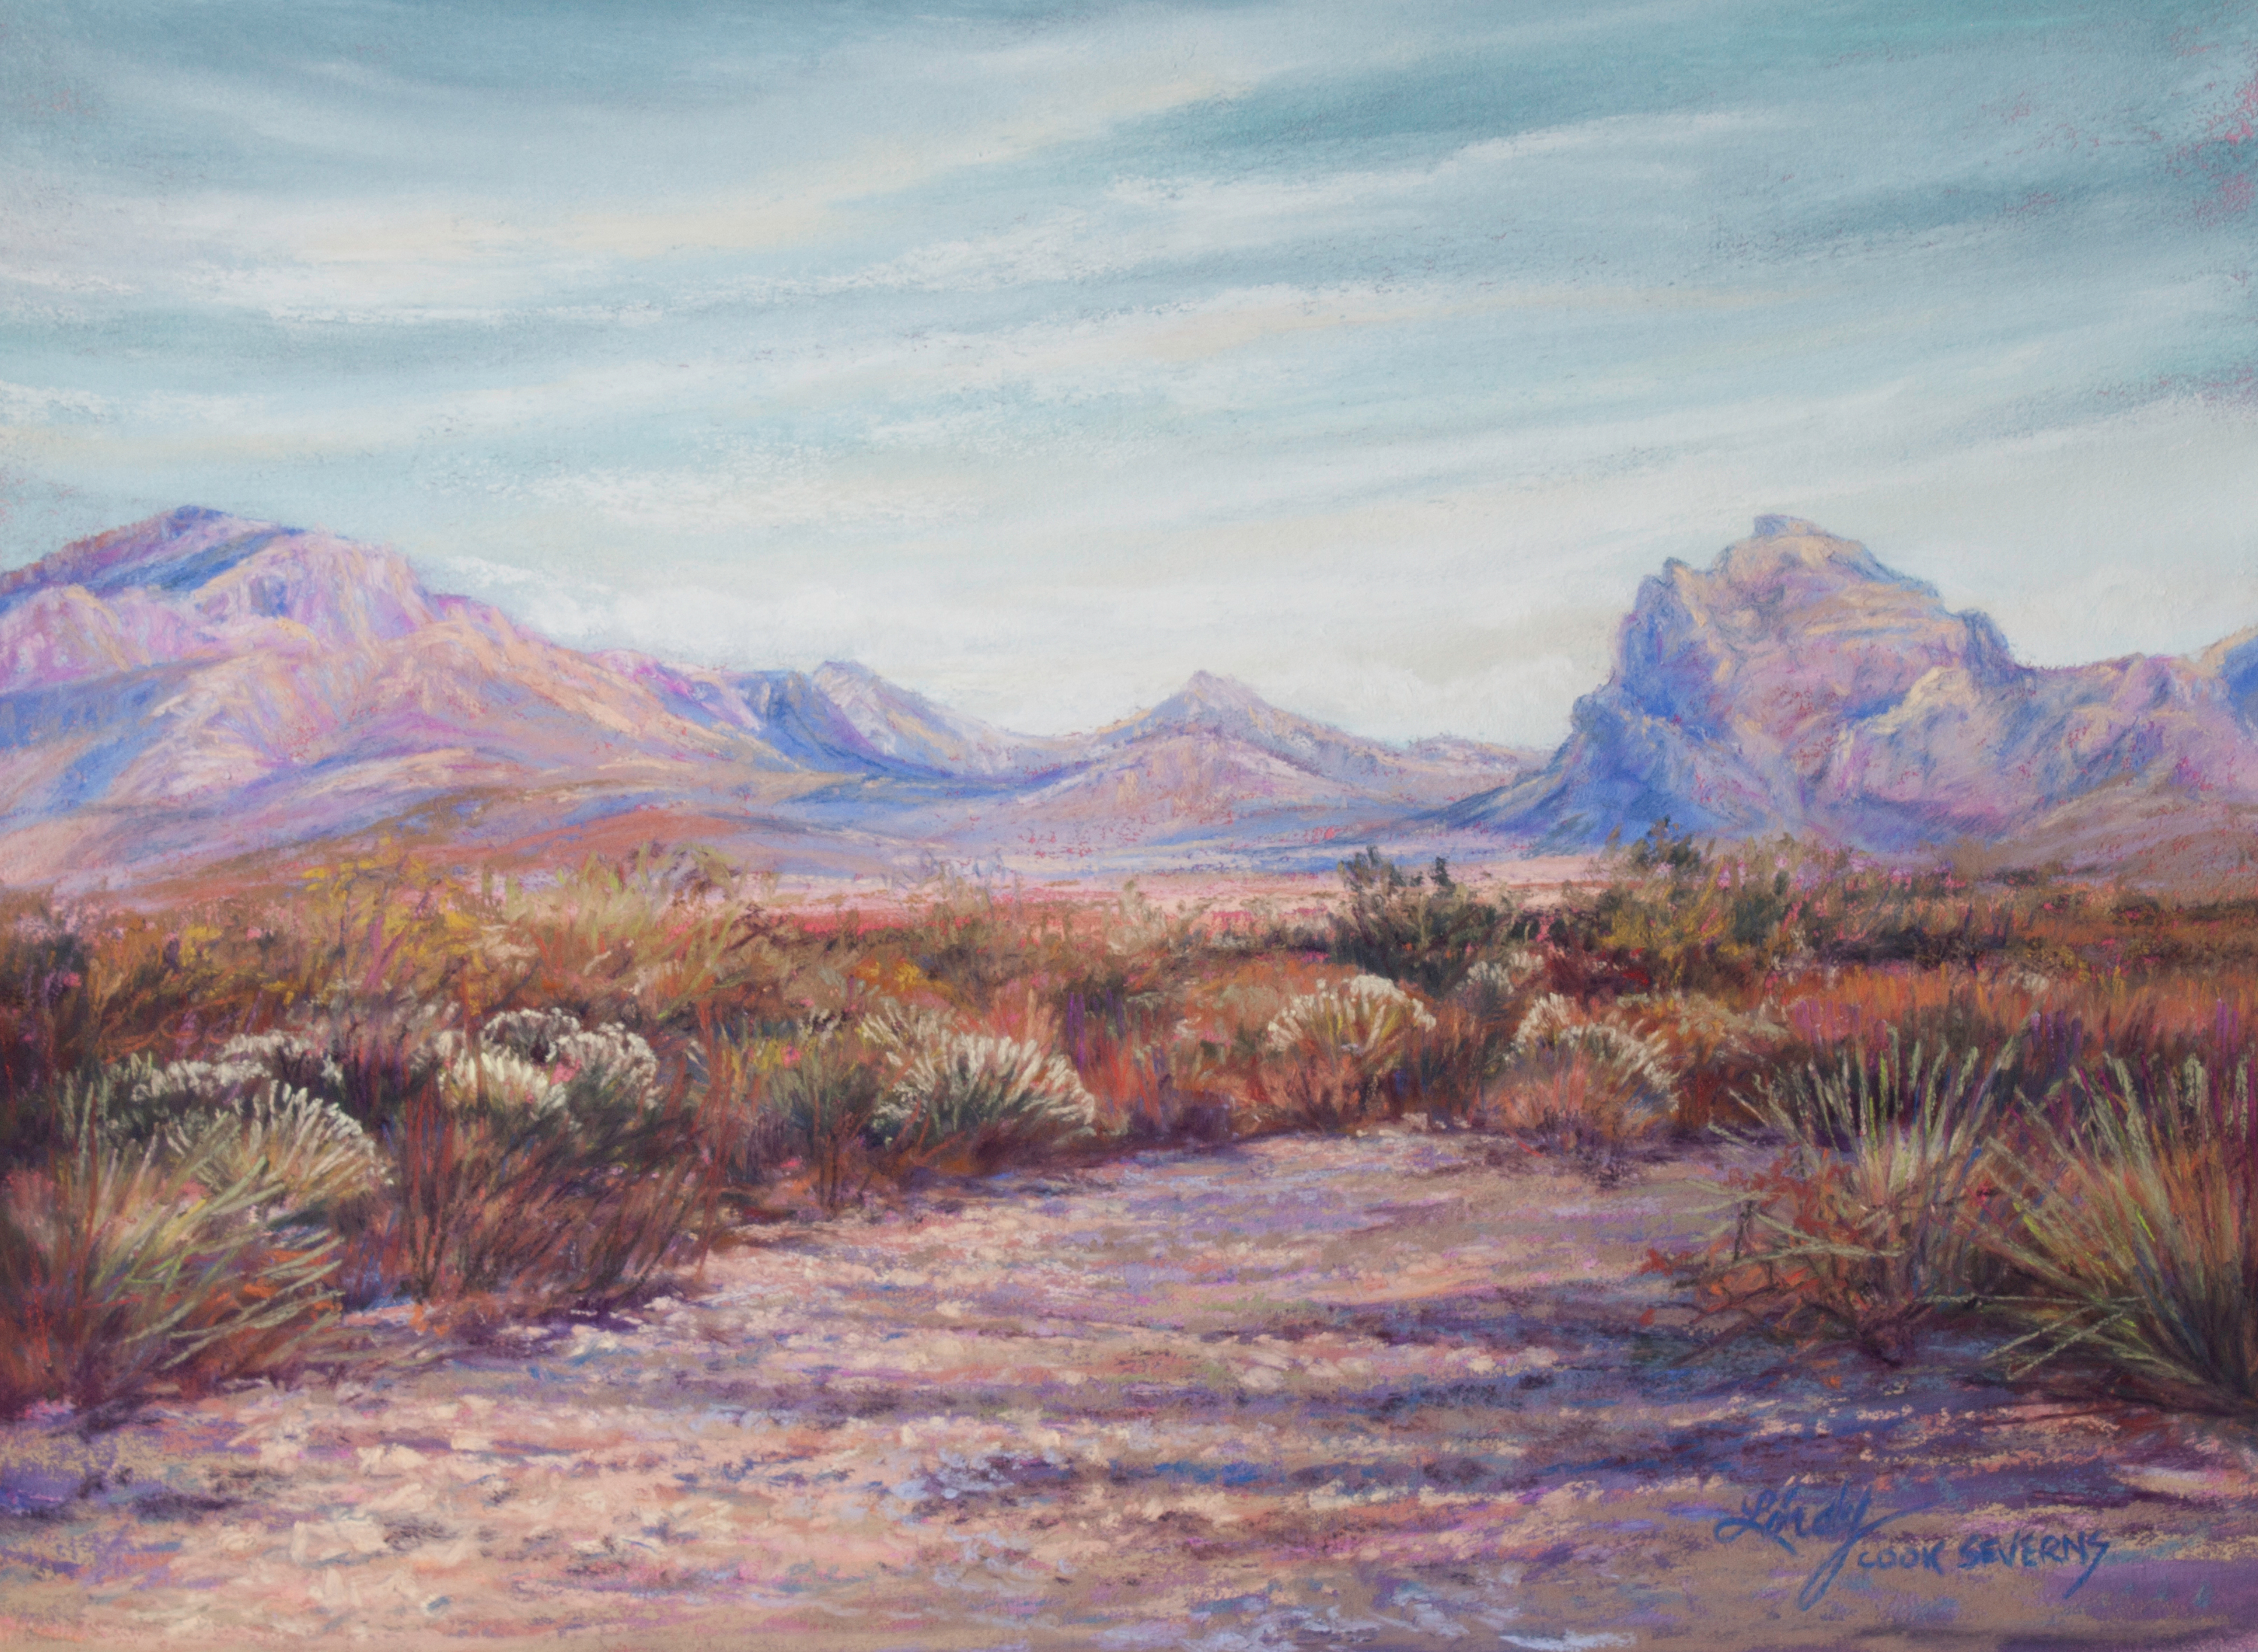 20f14 autumn color west tx style 9x12 pastel lindy c severns edited 1 yji8fi